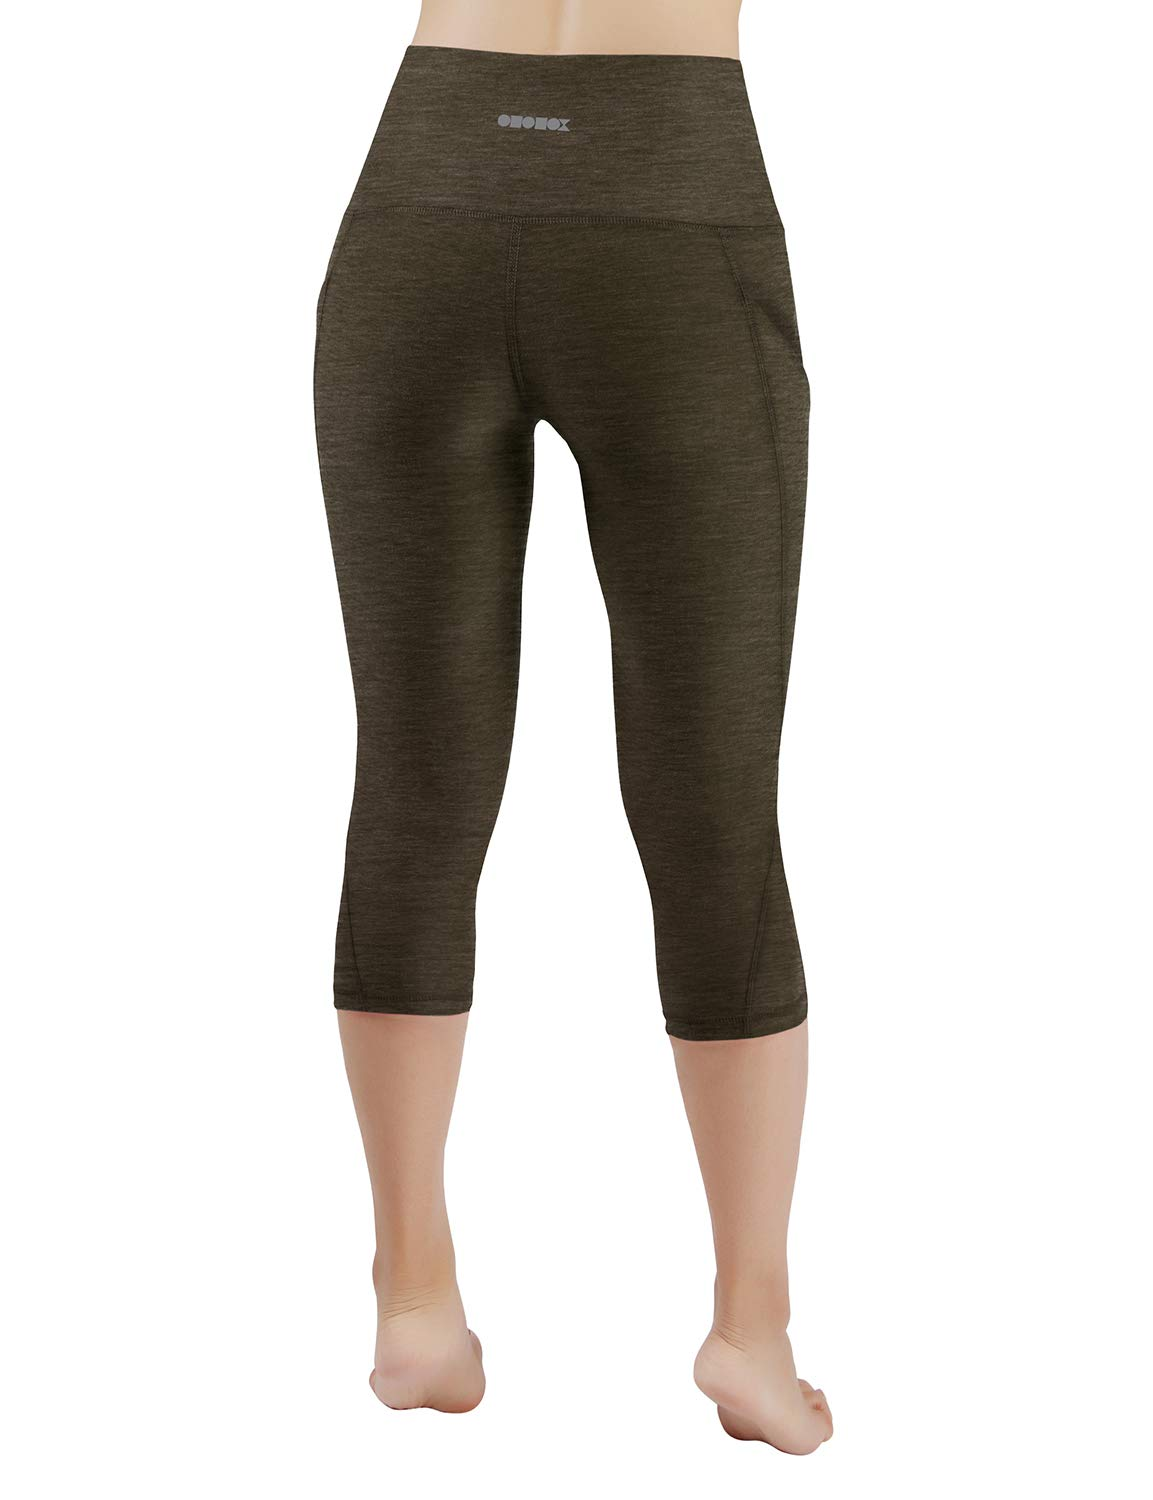 ODODOS High Waist Out Pocket Yoga Capris Pants Tummy Control Workout Running 4 Way Stretch Yoga Leggings,Olive,X-Small by ODODOS (Image #3)